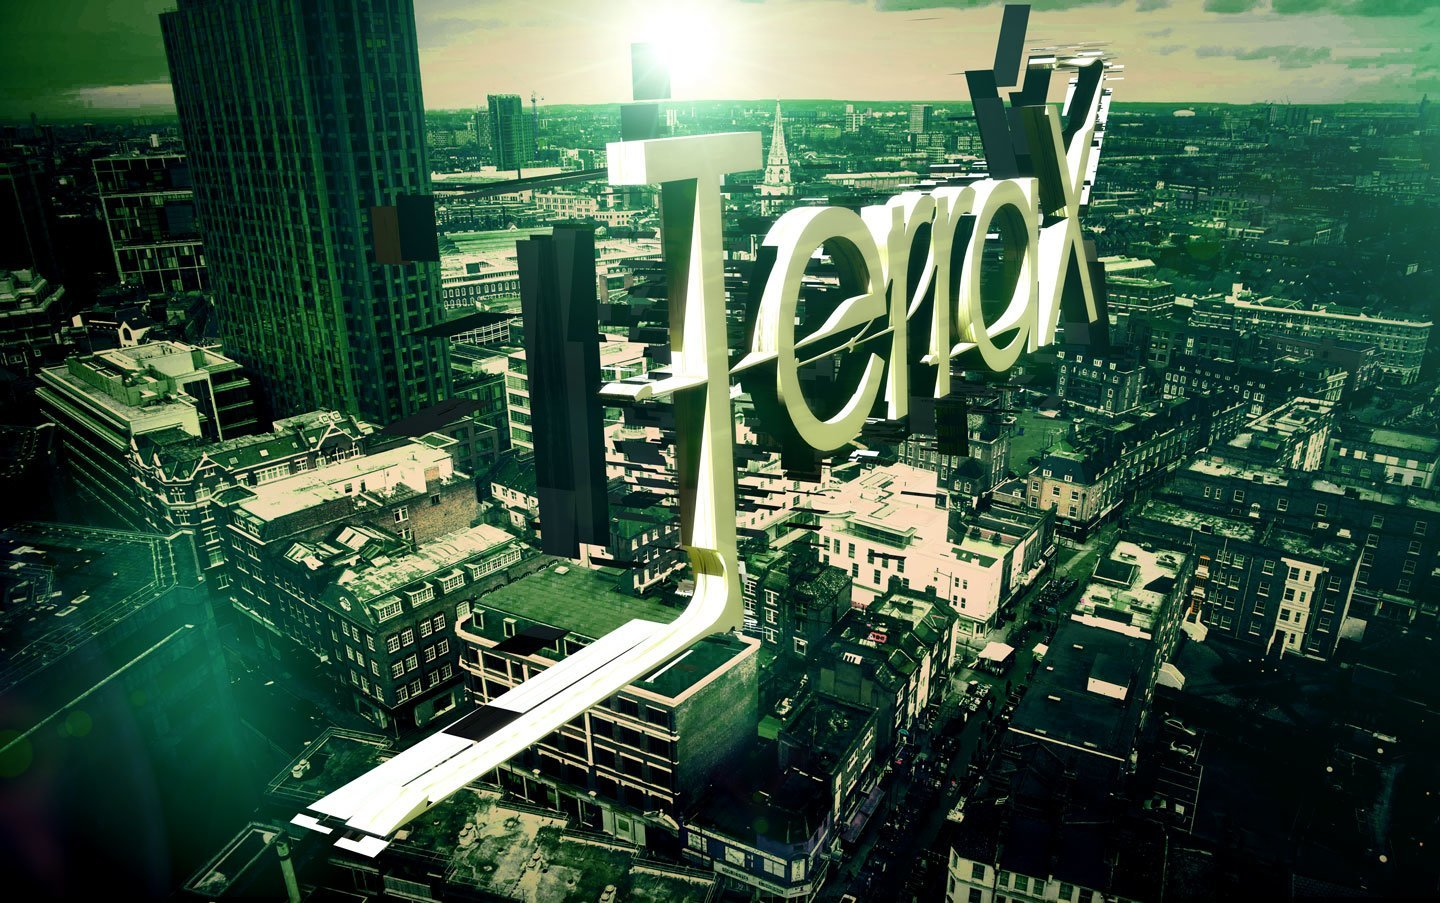 00_opening_title3